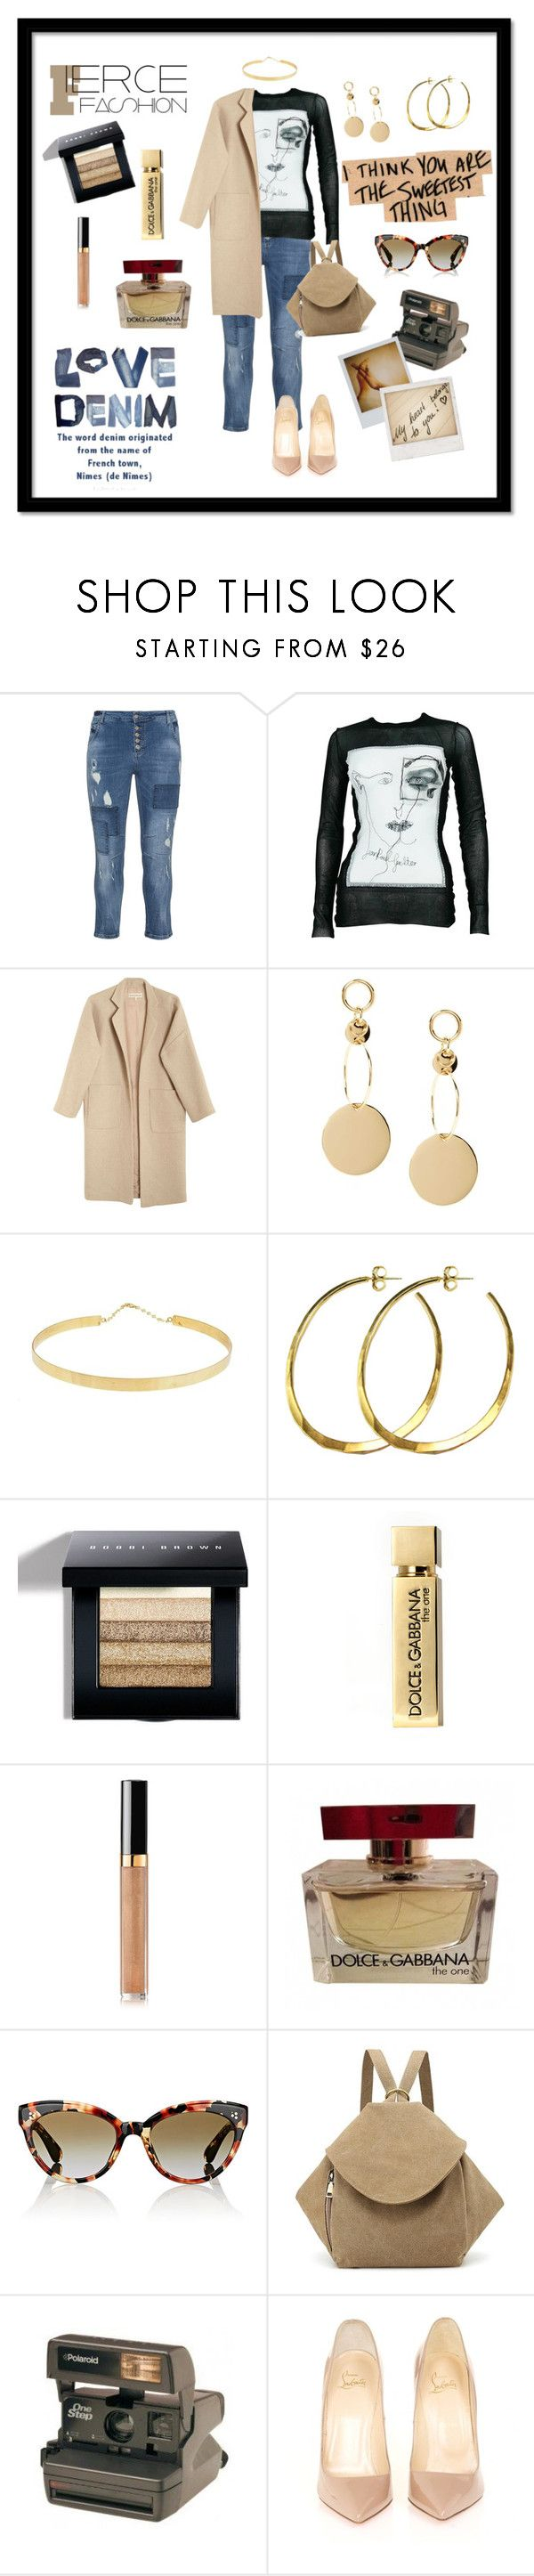 """""""I Think You're The Sweetest Thing"""" by gigiglow ❤ liked on Polyvore featuring DNY, Jean-Paul Gaultier, Mara Hoffman, Lana Jewelry, Rebecca Norman, Bobbi Brown Cosmetics, Dolce&Gabbana, Chanel, Oliver Peoples and Polaroid"""